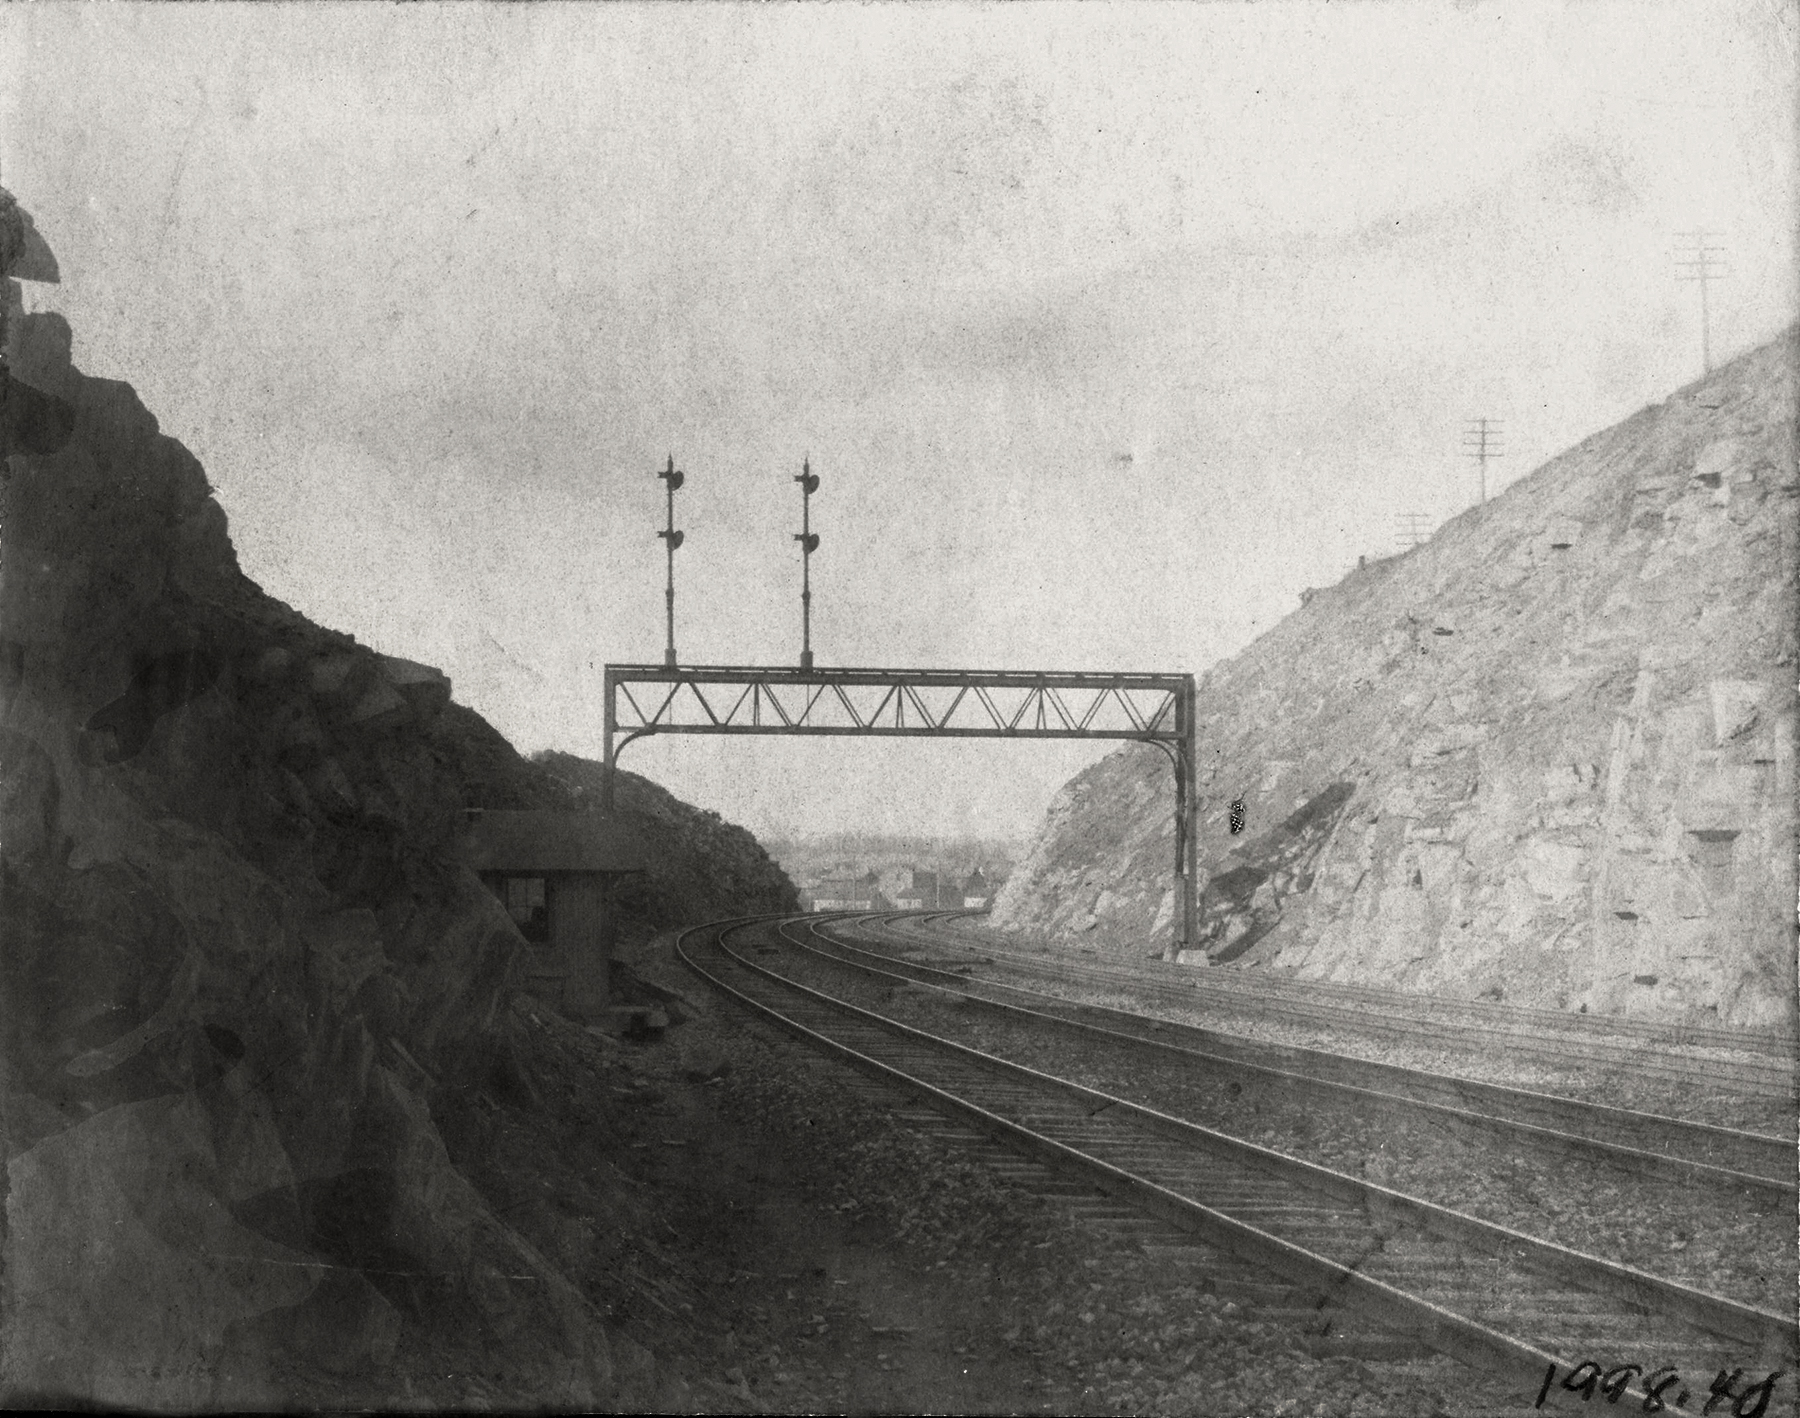 With Christiana in view, the distant signal to NI interlocking at Atglen stands prominently in this view looking west in the North Bend Cut around the turn of the century. Moores Memorial Library, Christiana, PA